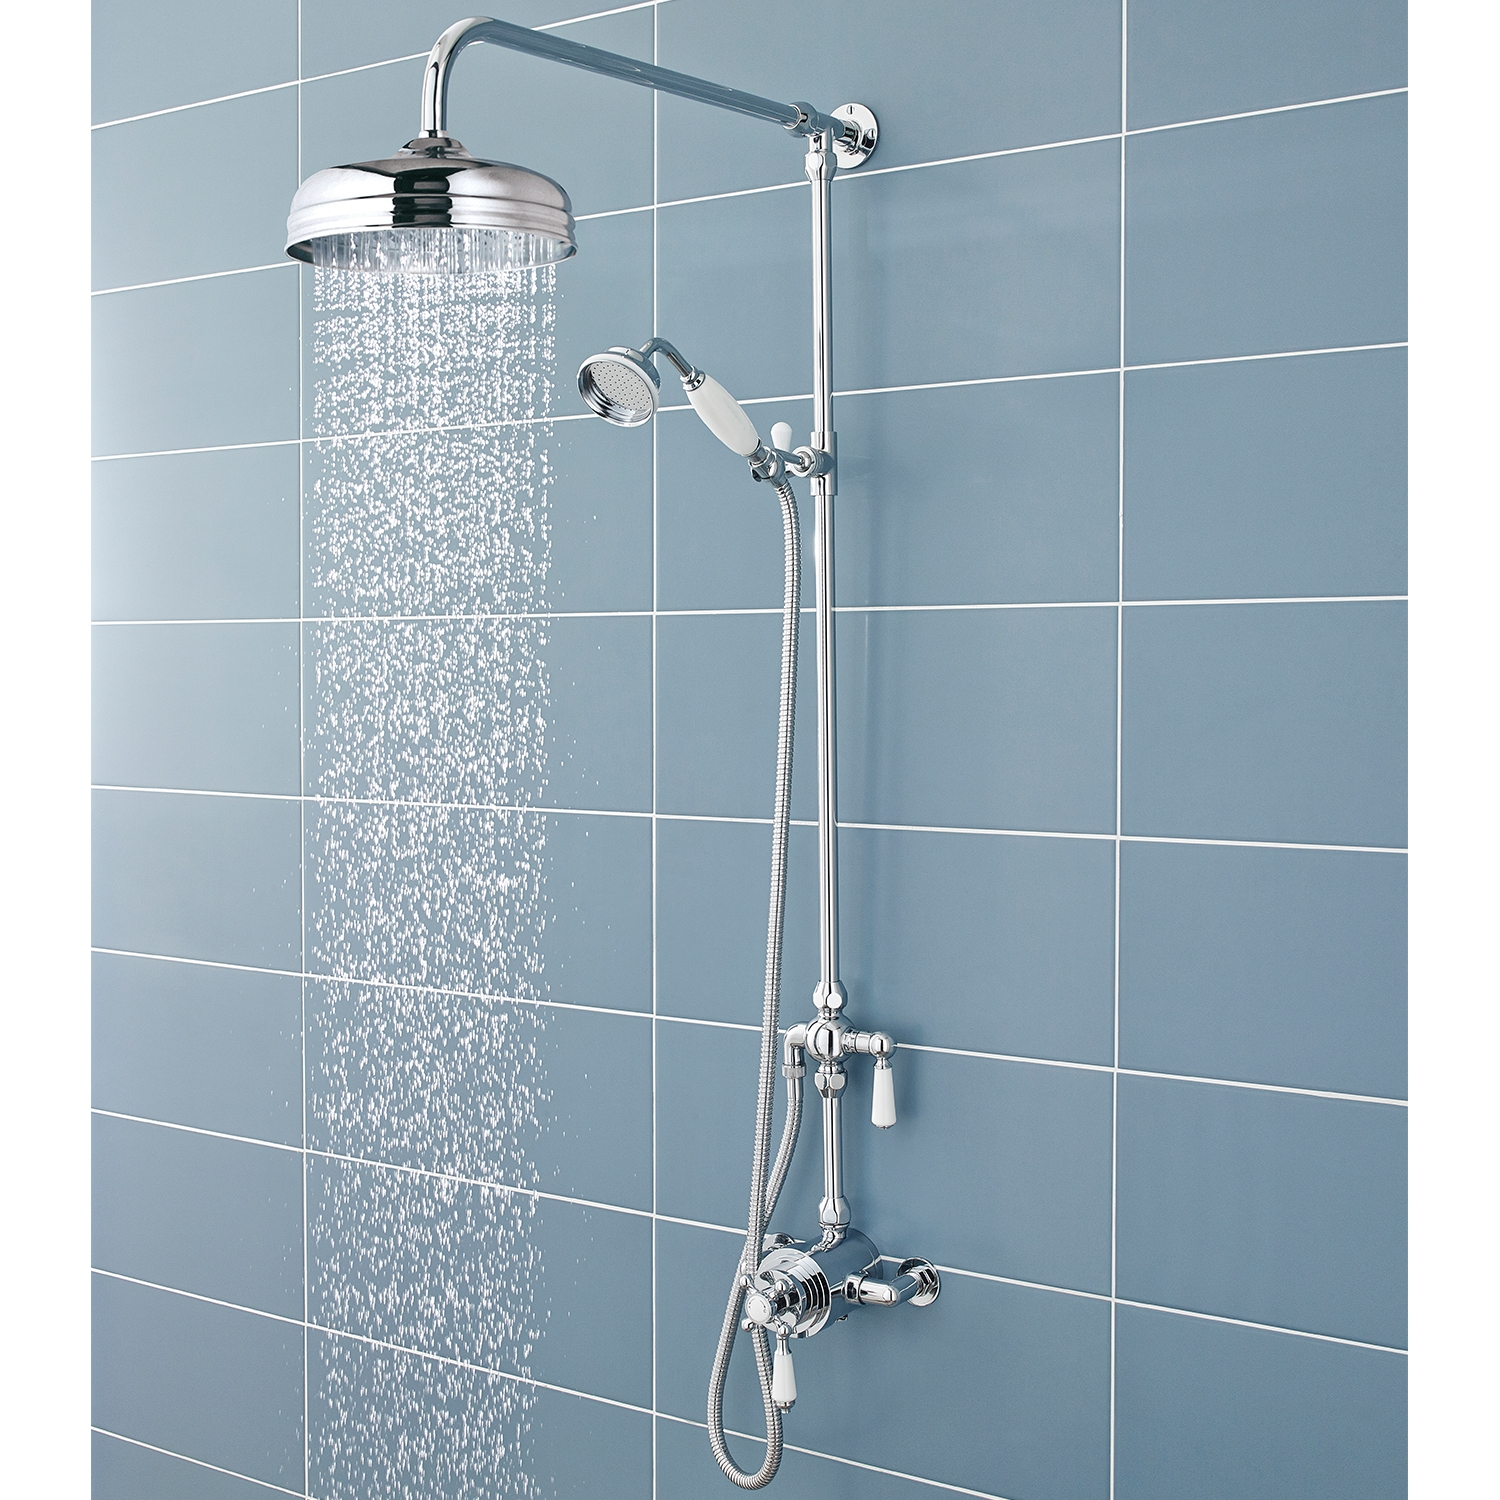 Hudson Reed Victorian Grand Shower Riser Kit with Diverter, Fixed Shower Head, Handset, Chrome-0